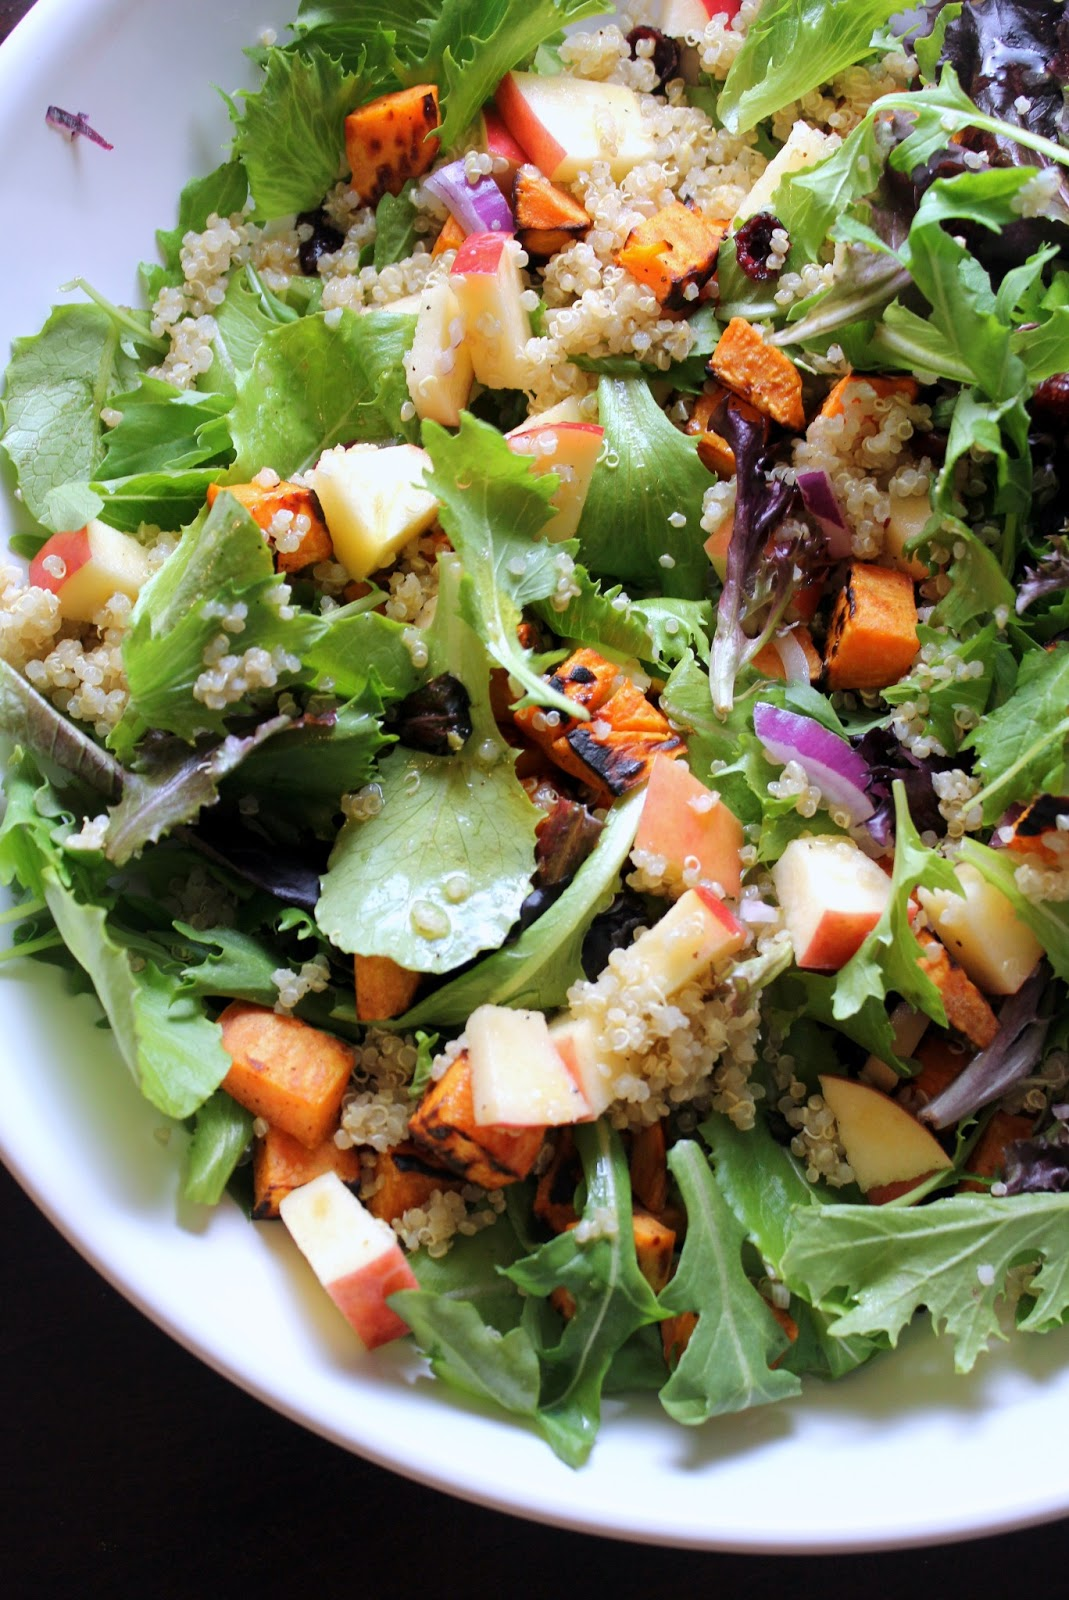 ... with quinoa quinoa roasted eggplant and arugula salad with apples and